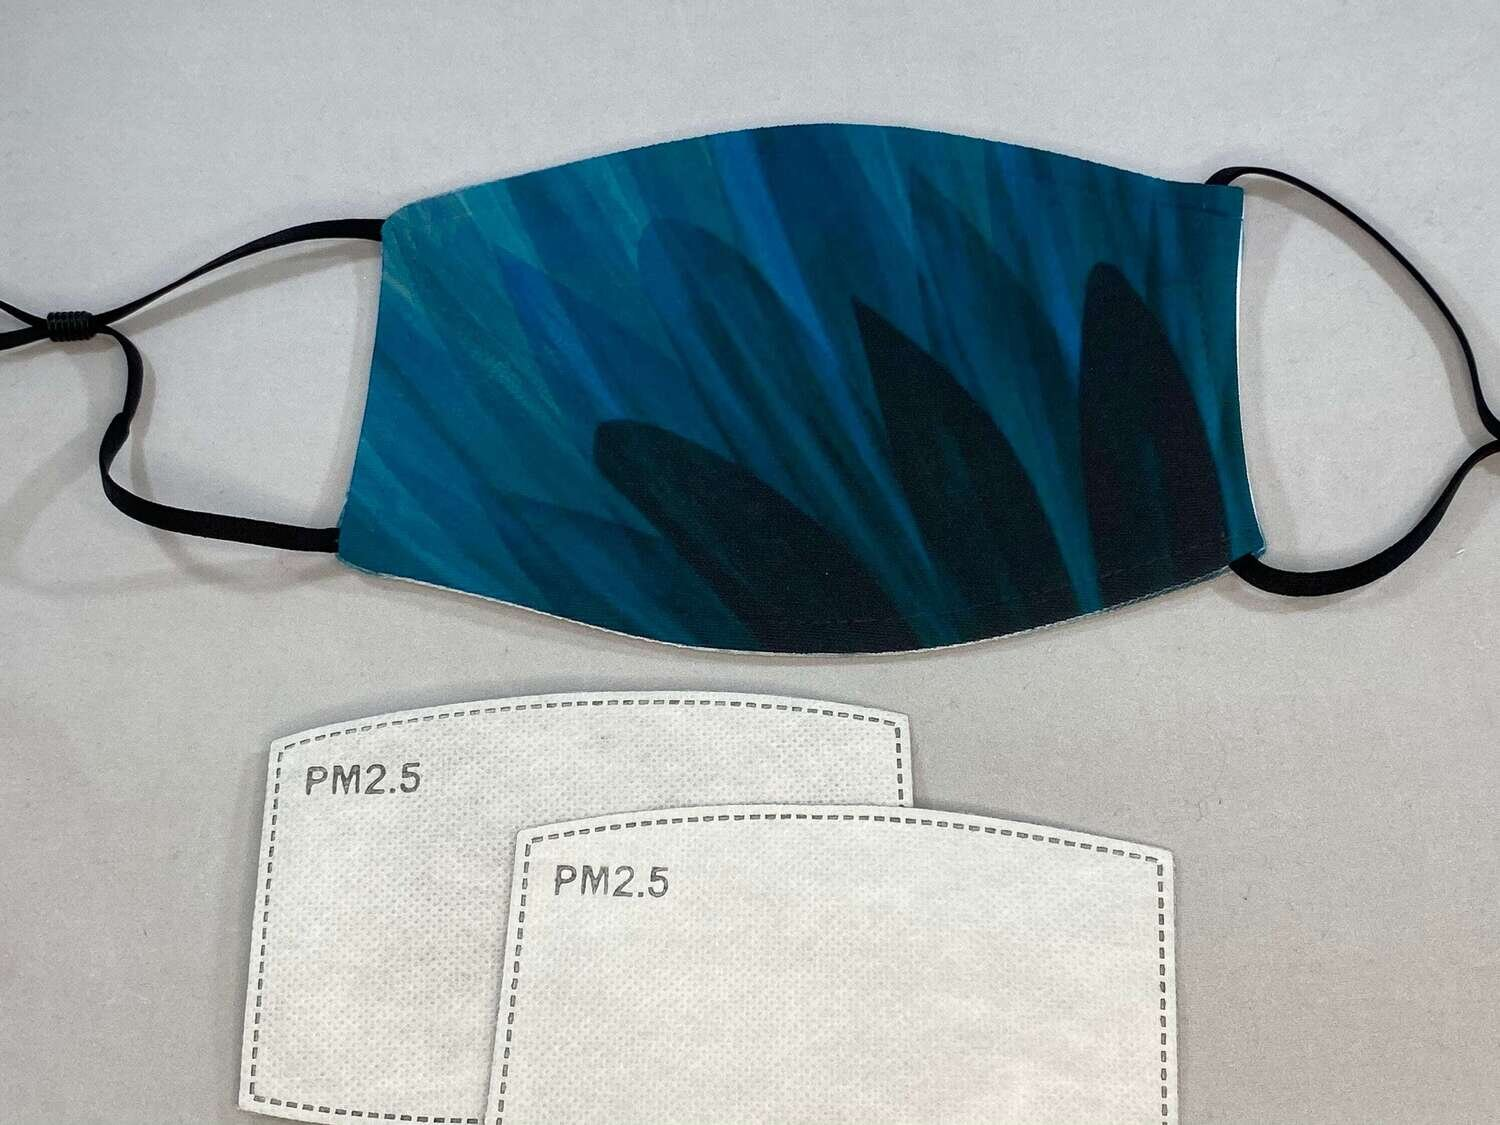 Teal Flower mask, custom photo face mask, face covering, mask, 2 FREE PM2.5 FILTERS!